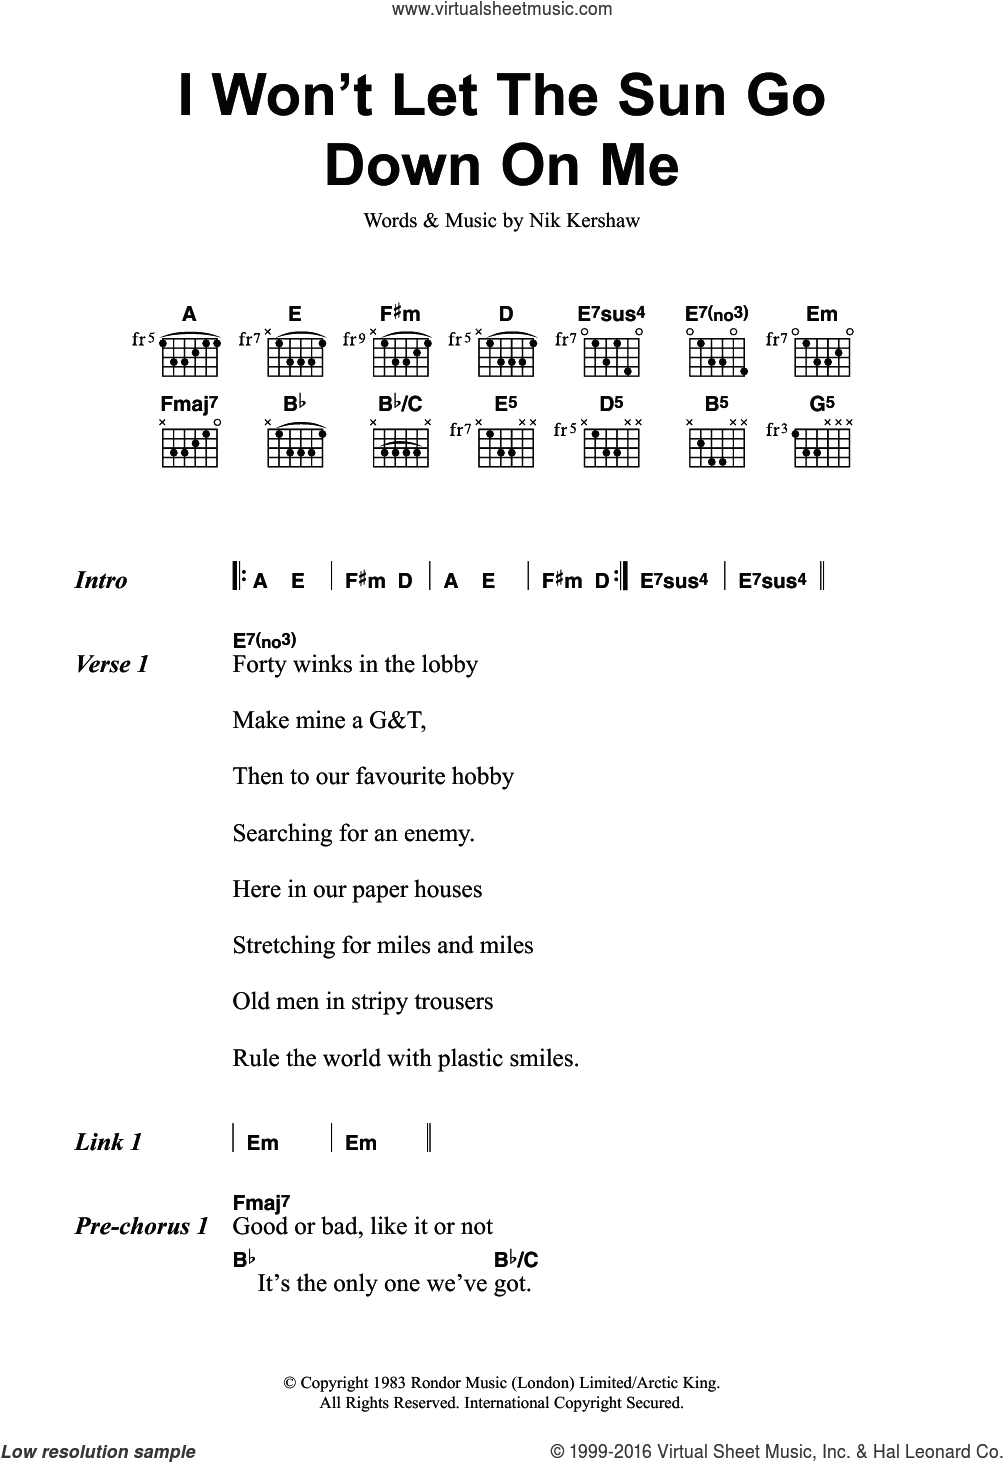 I Won't Let The Sun Go Down On Me sheet music for guitar (chords) by Nik Kershaw. Score Image Preview.